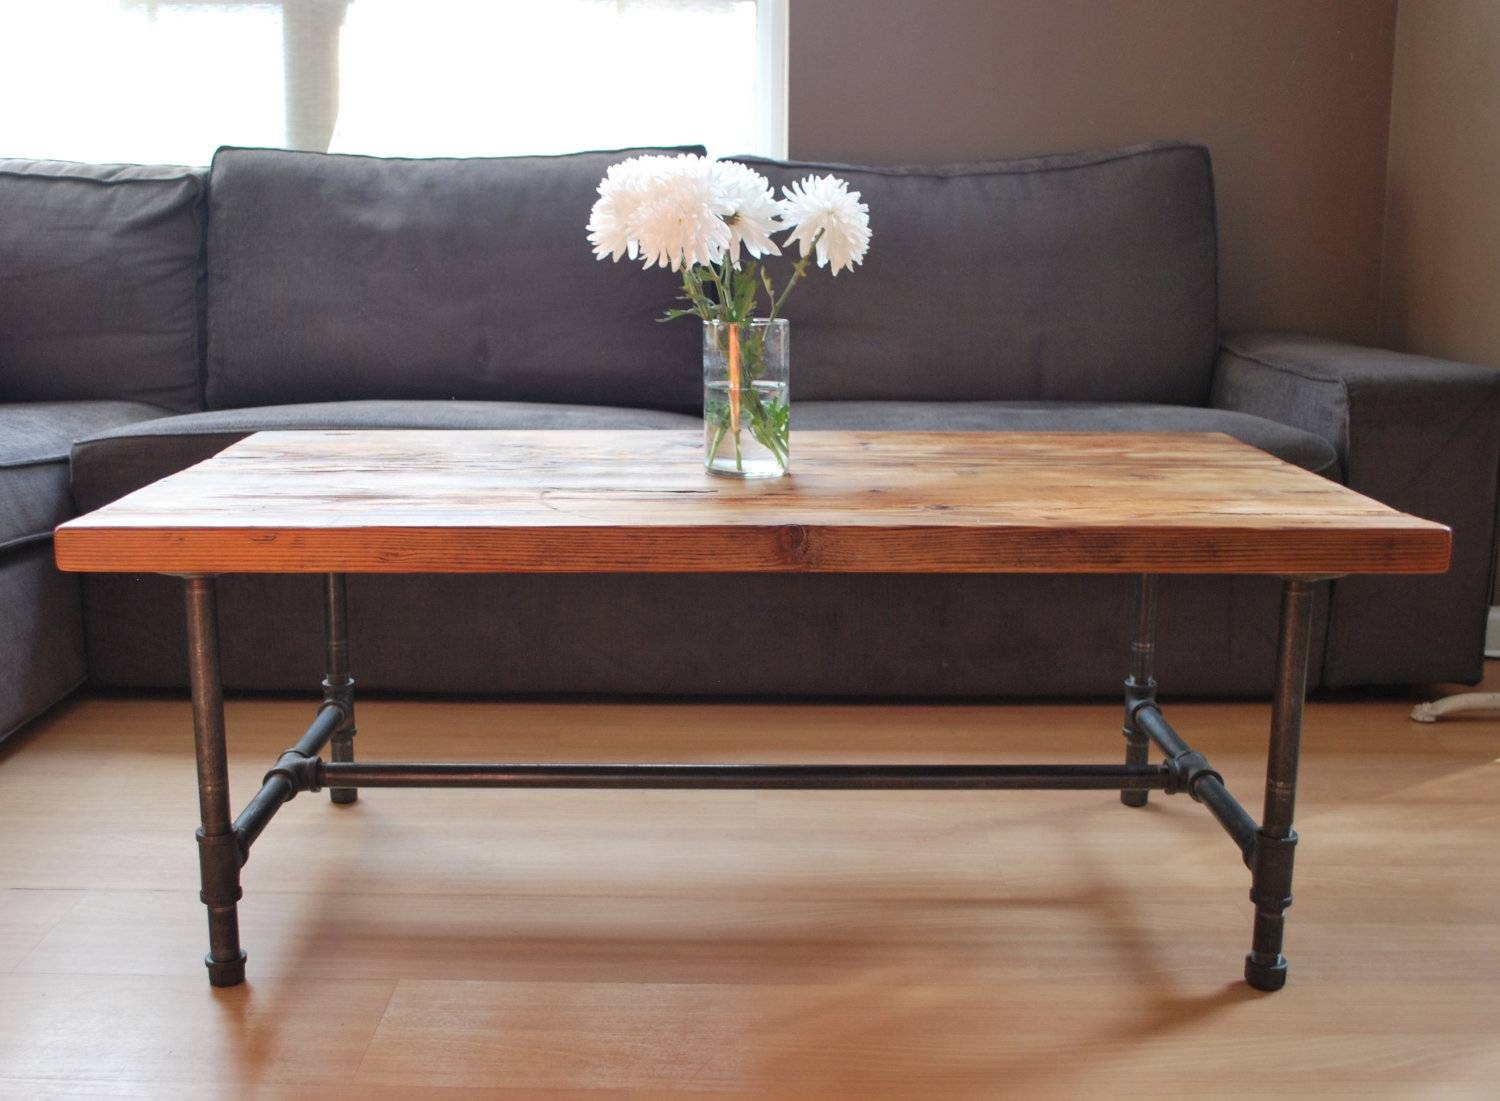 Dark Wood Coffee Table With Metal Legs | Coffee Tables Decoration regarding Black Wood Coffee Tables (Image 23 of 30)